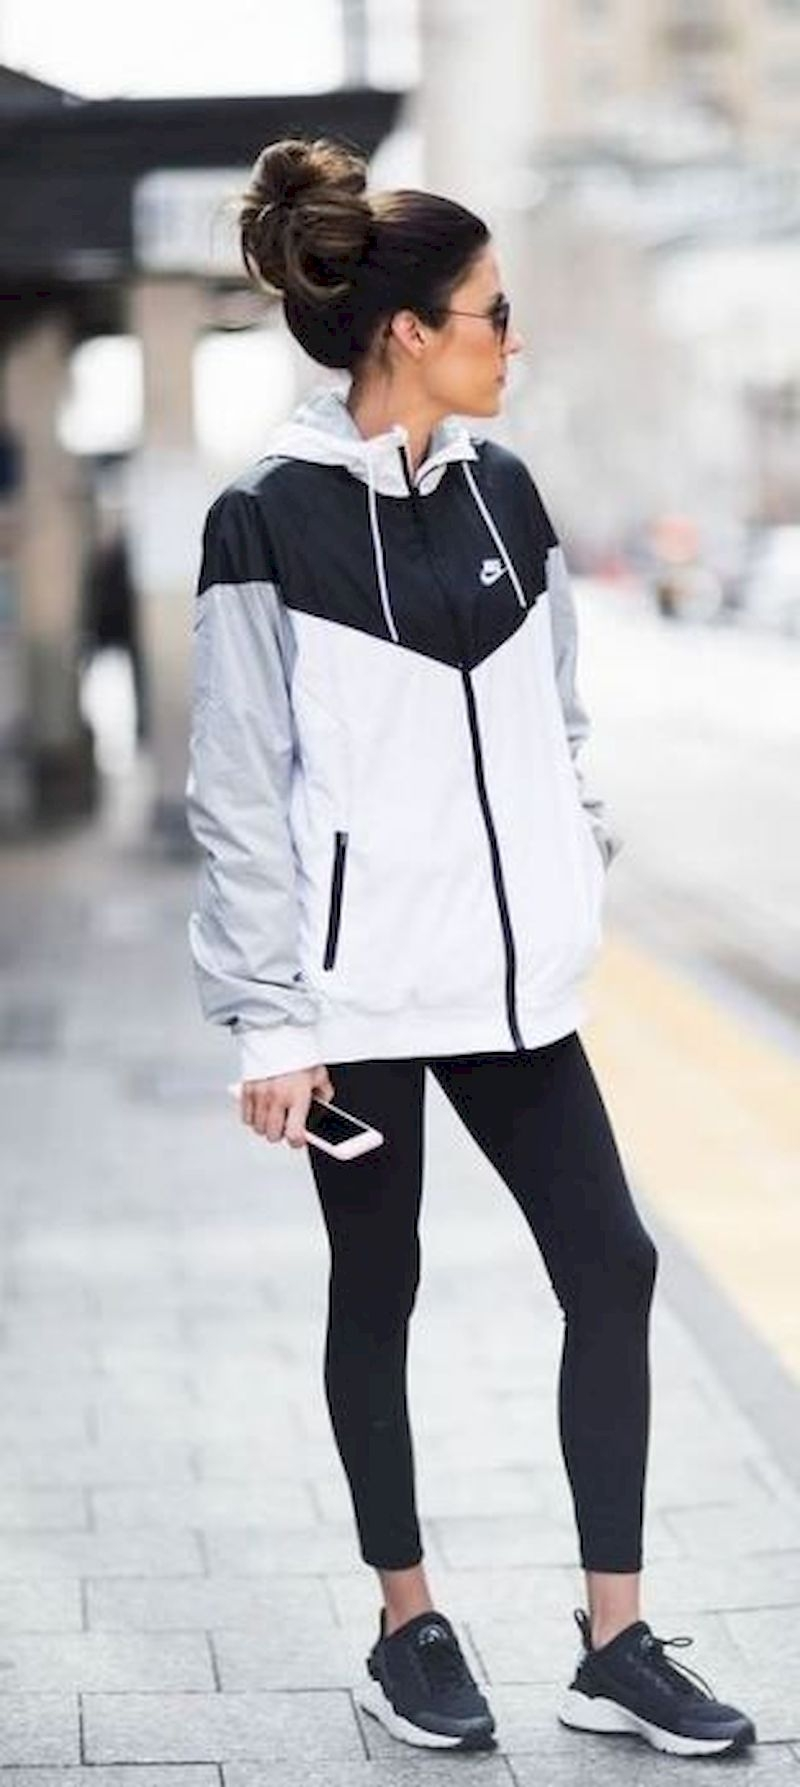 Sporty outfits for school with nike jacket and black shoes